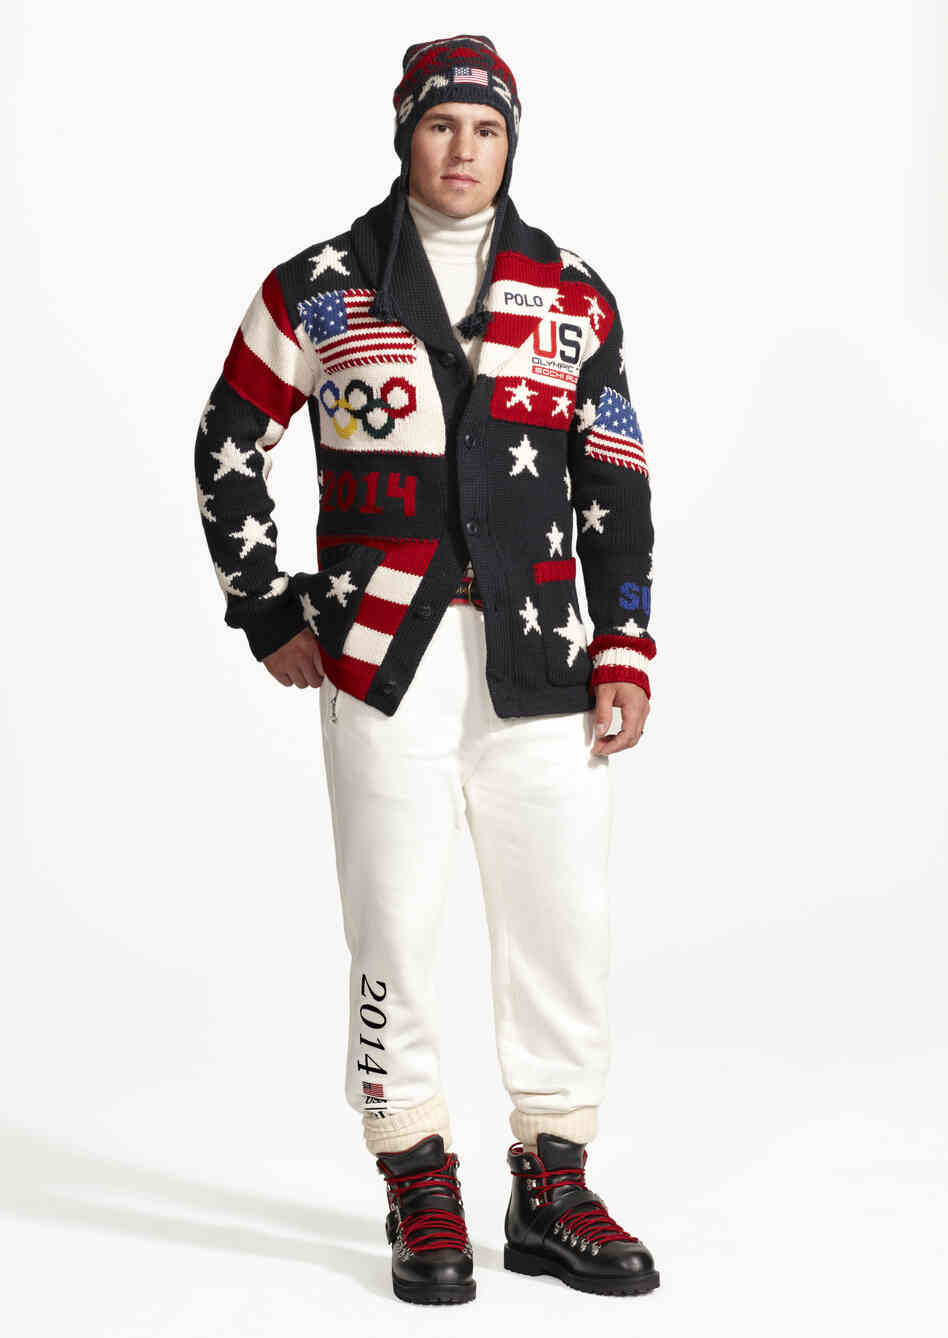 This image released by Ralph Lauren shows American hockey player Zach Parise wearing the official uniform that Team USA will wear during opening ceremonies for the 2014 Winter Olympics in Sochi, Russia